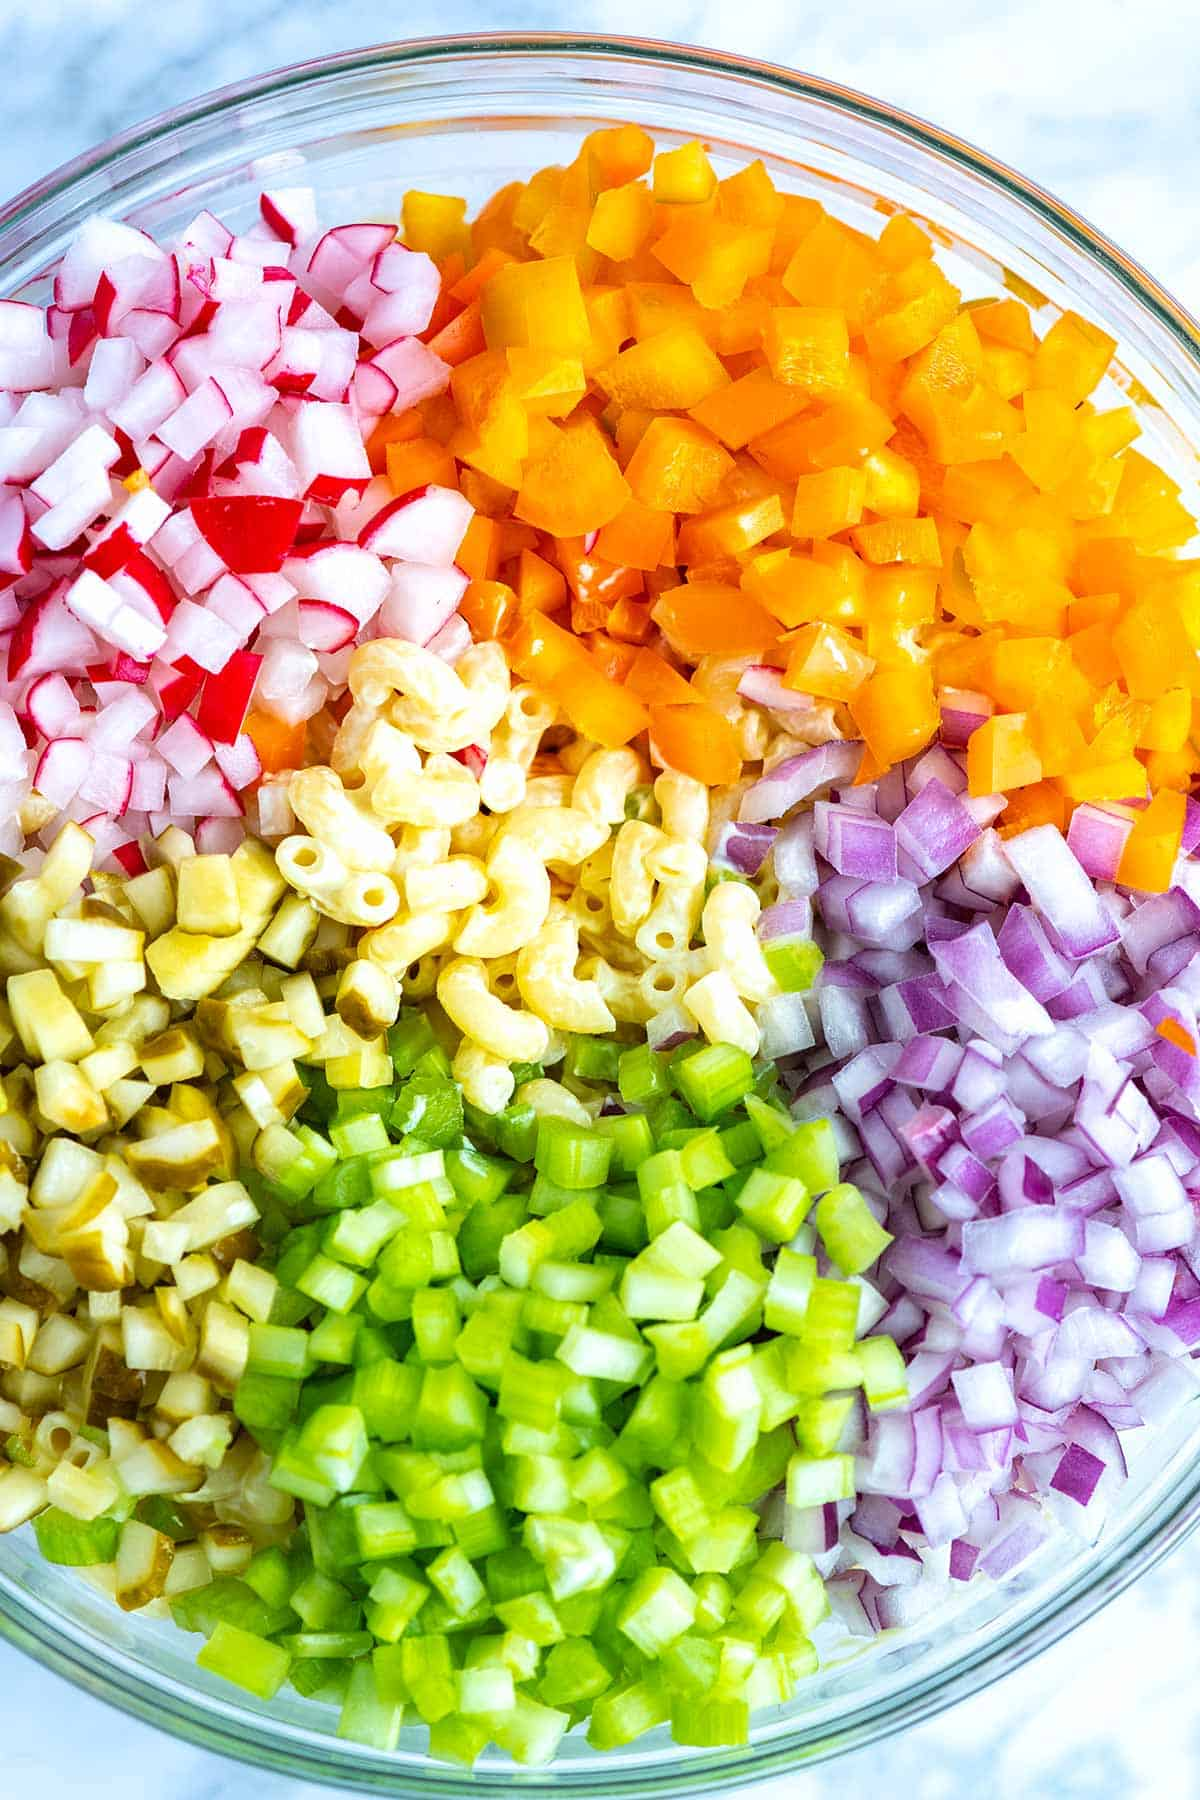 Ingredients for a Creamy Pasta Salad